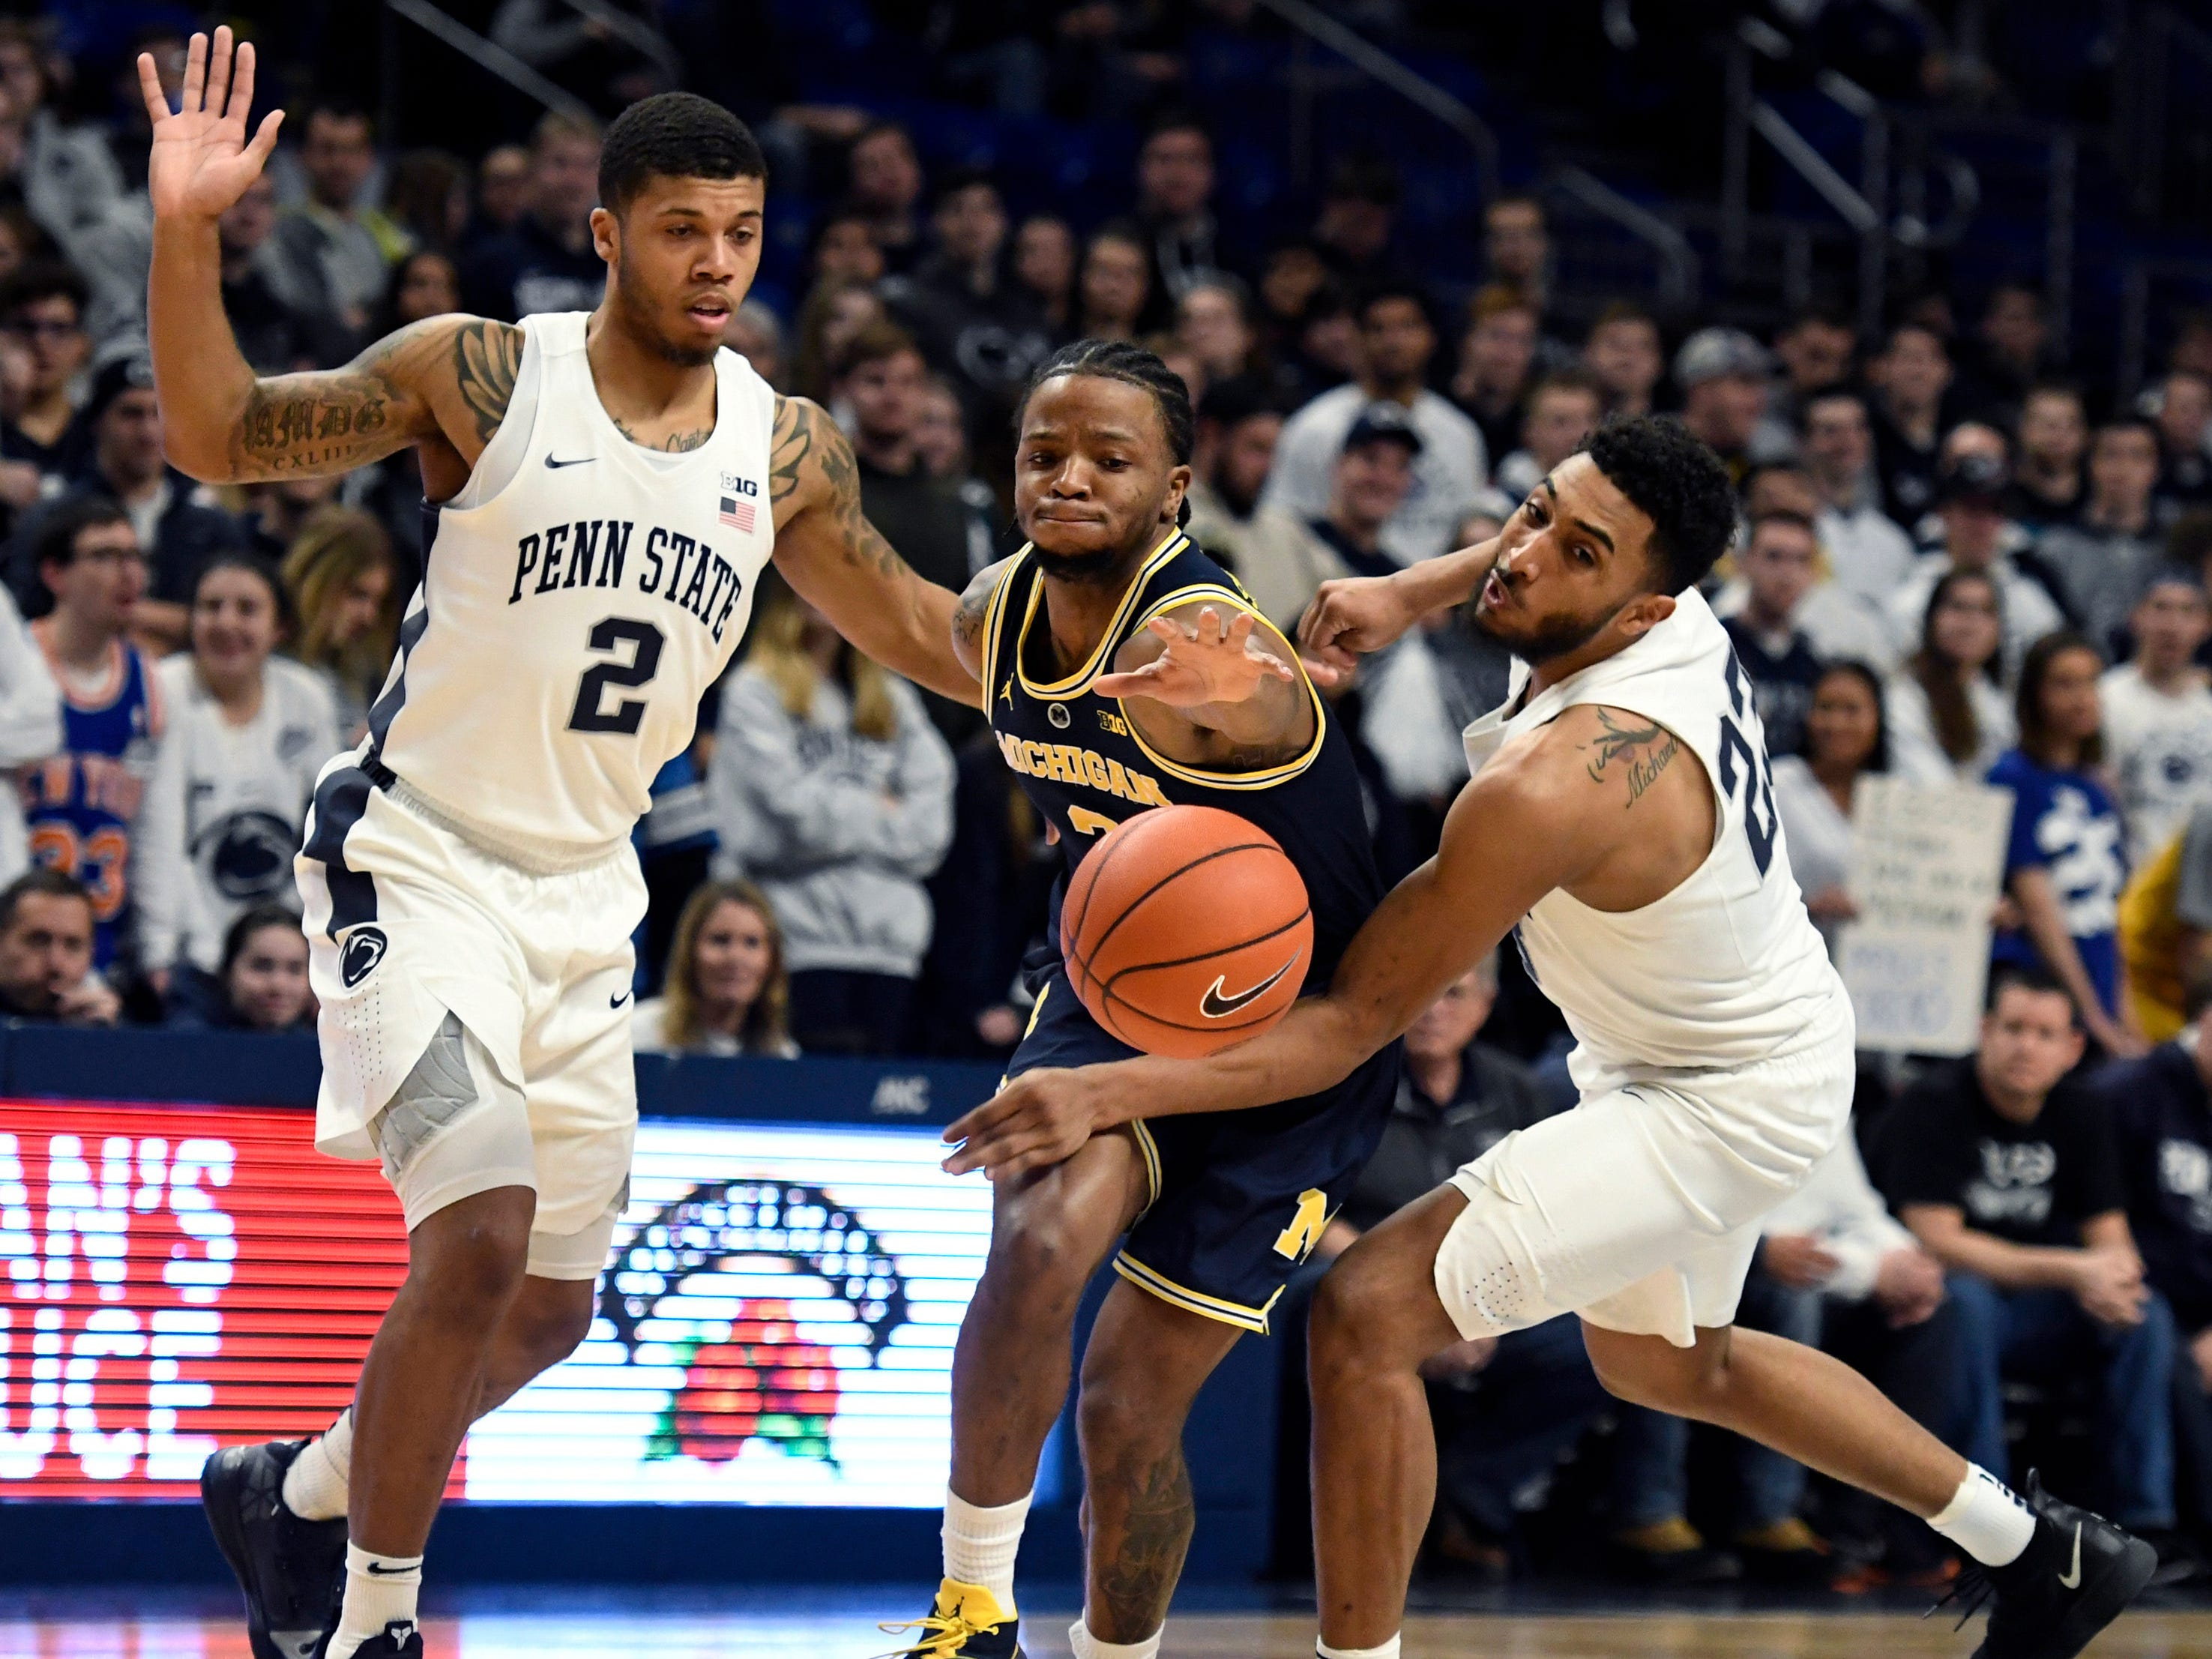 Penn State's Myles Dread (2) and Josh Reaves (23) knock the ball away from Michigan guard Zavier Simpson during the first half Tuesday, Feb. 12, 2019, in State College, Pa.